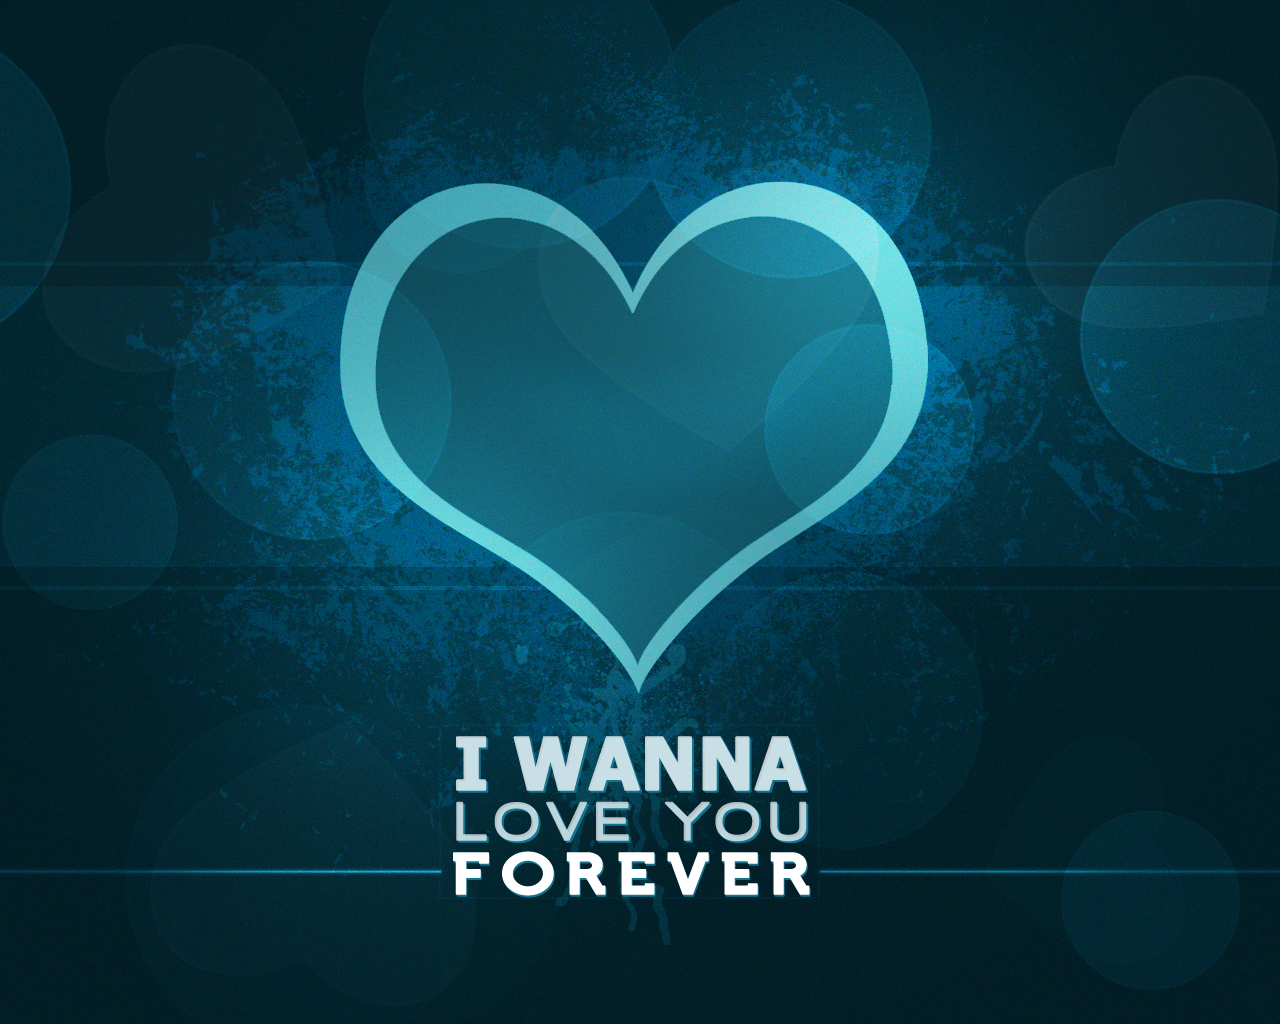 Wallpaper Love U Forever : Wallpaper - I Wanna Love You Forever by diigu on DeviantArt